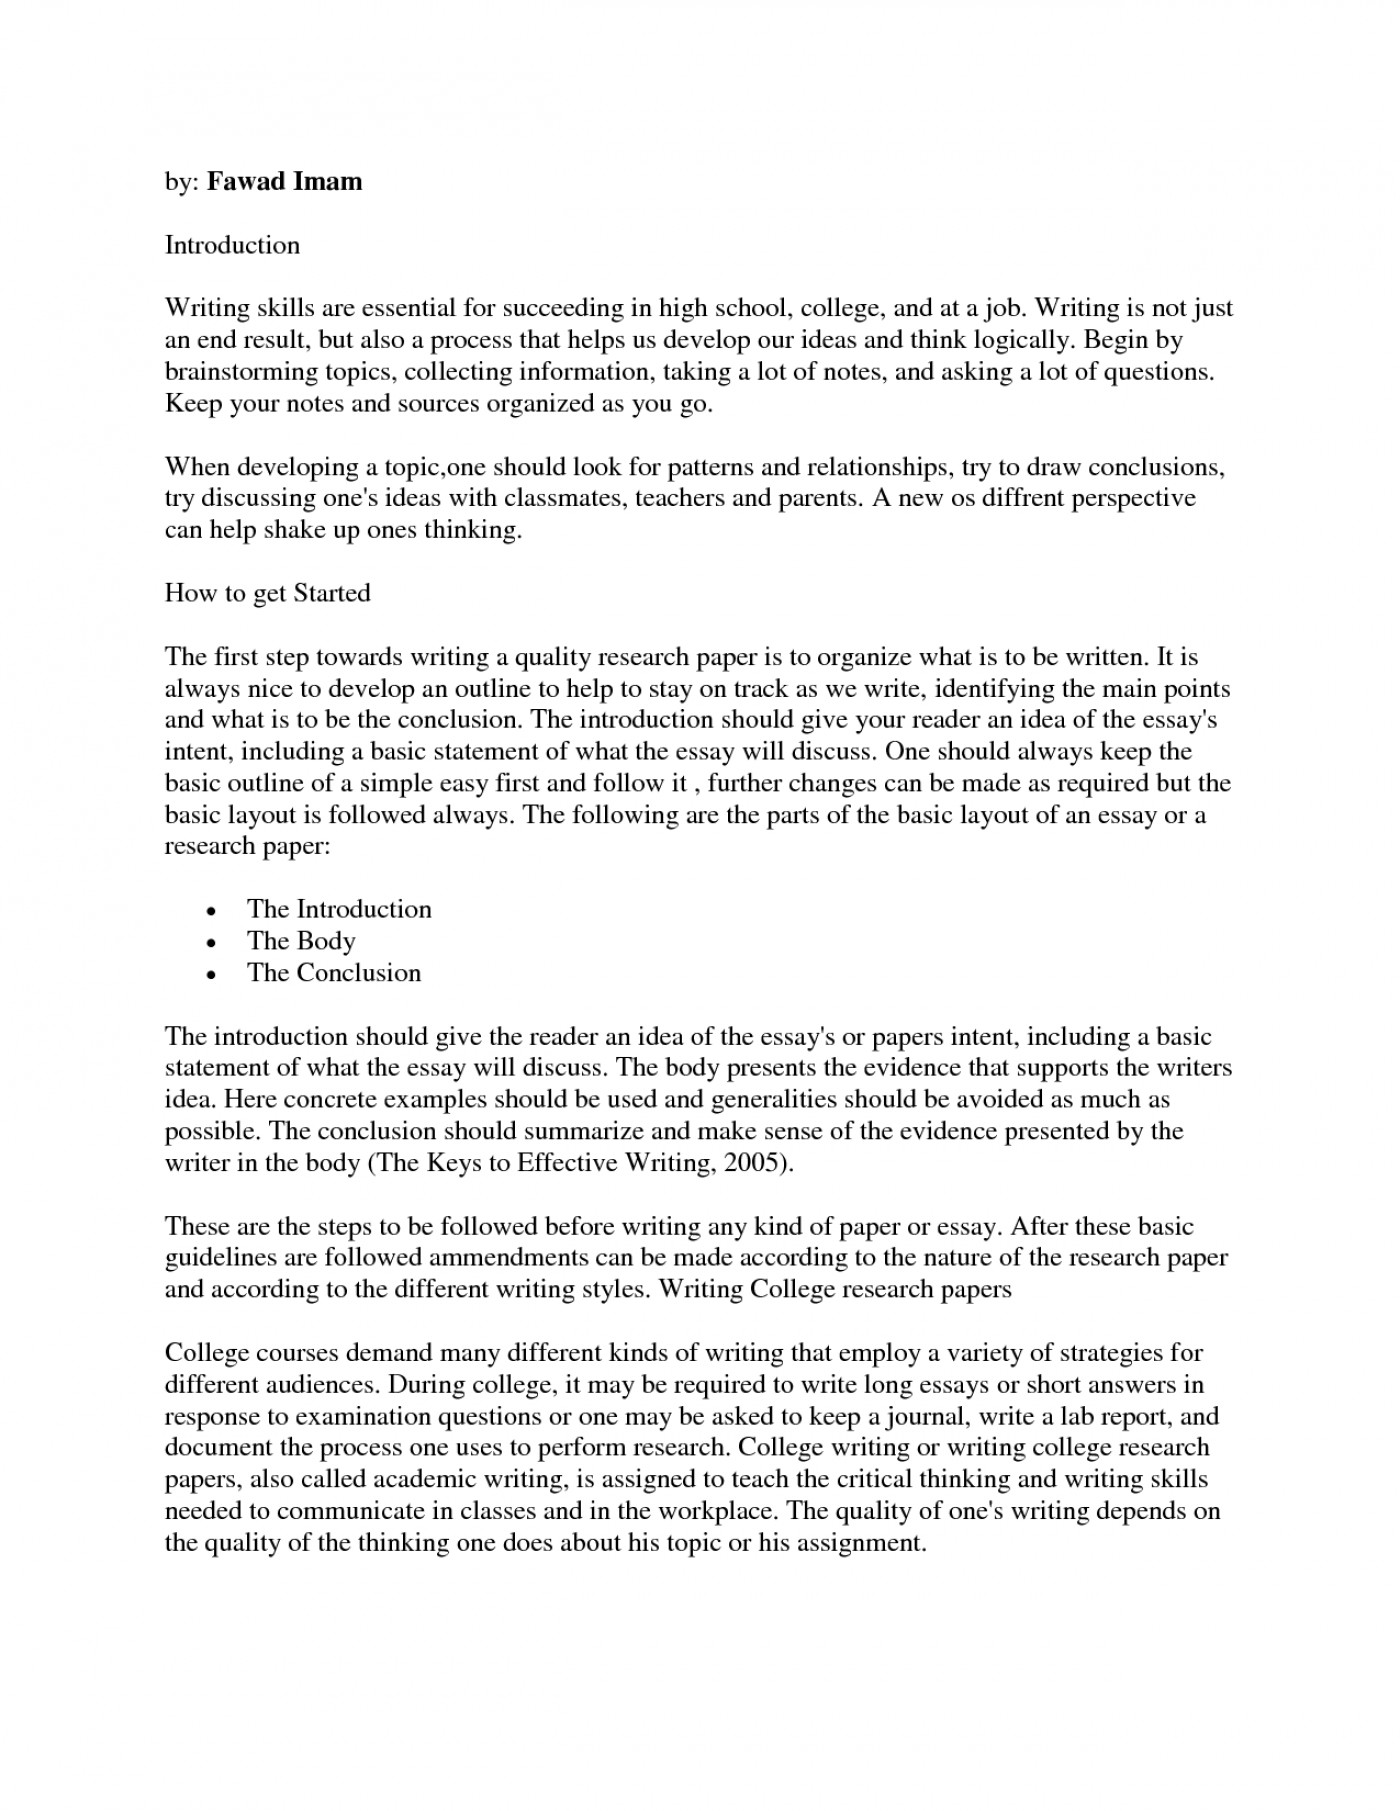 006 How To Write Research Papers Paper Outstanding A Proposal Or Thesis In Apa Format Introduction Pdf 1400